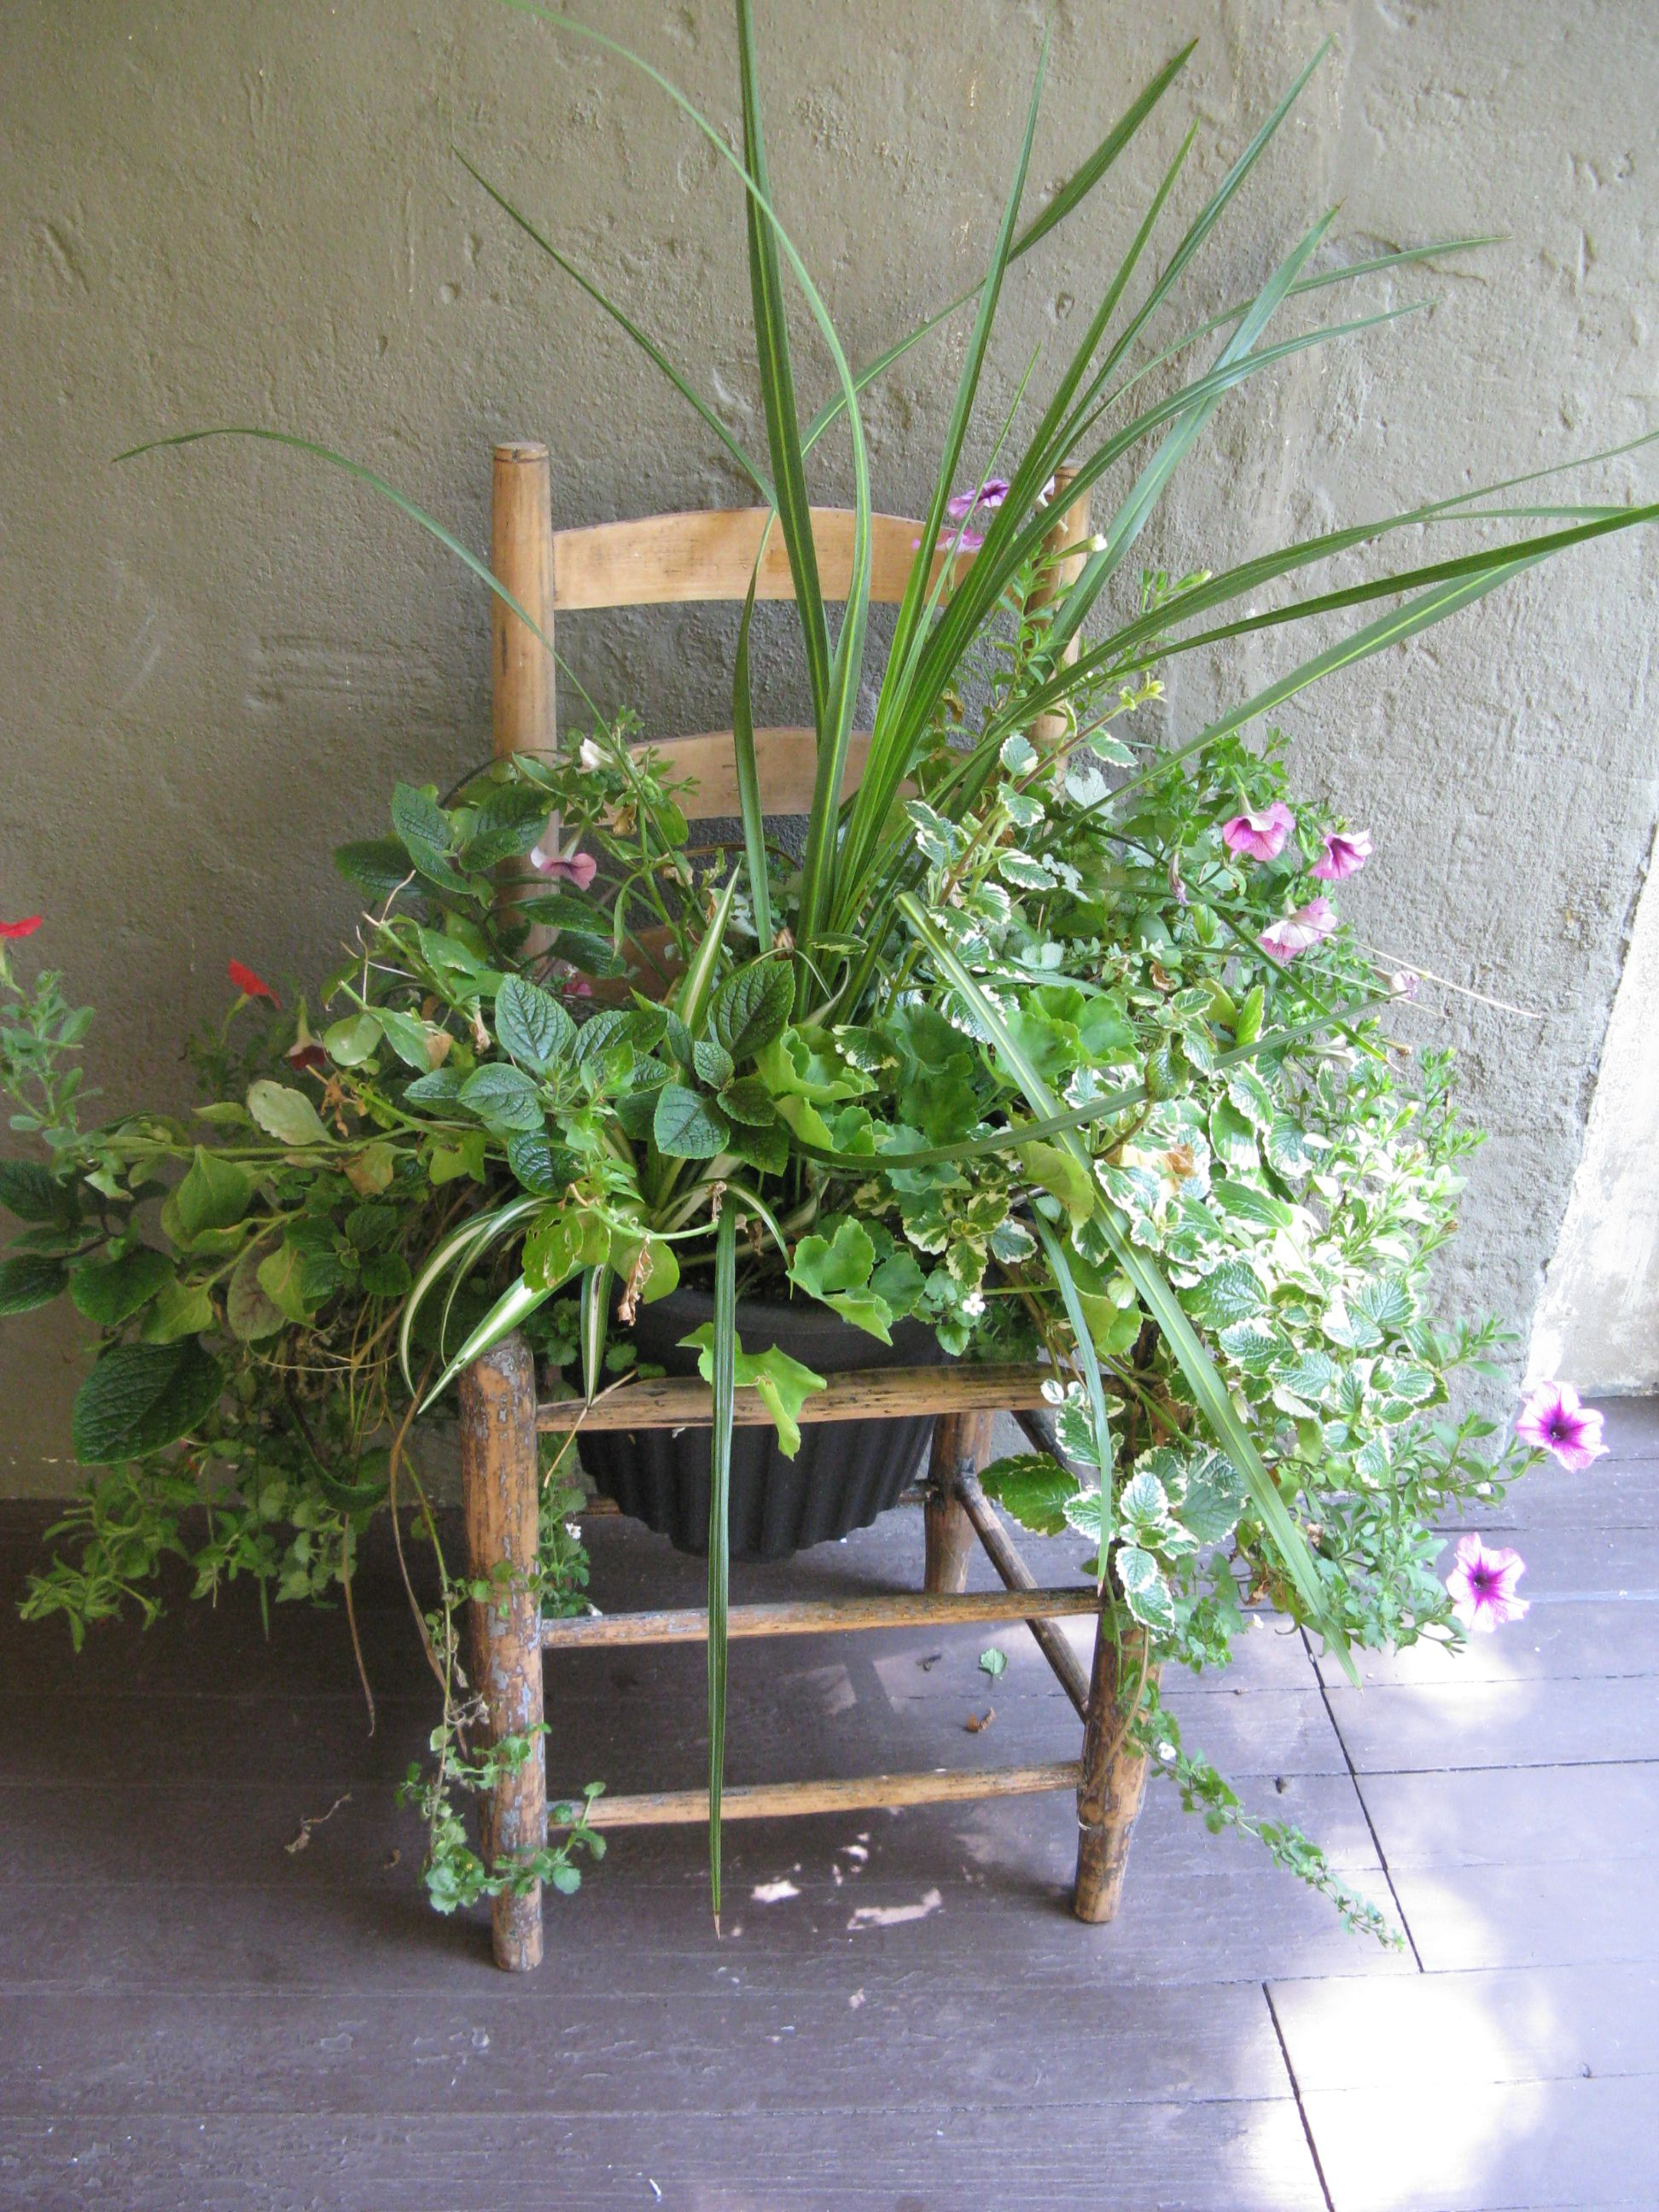 Antique ladder back chair used as planter.